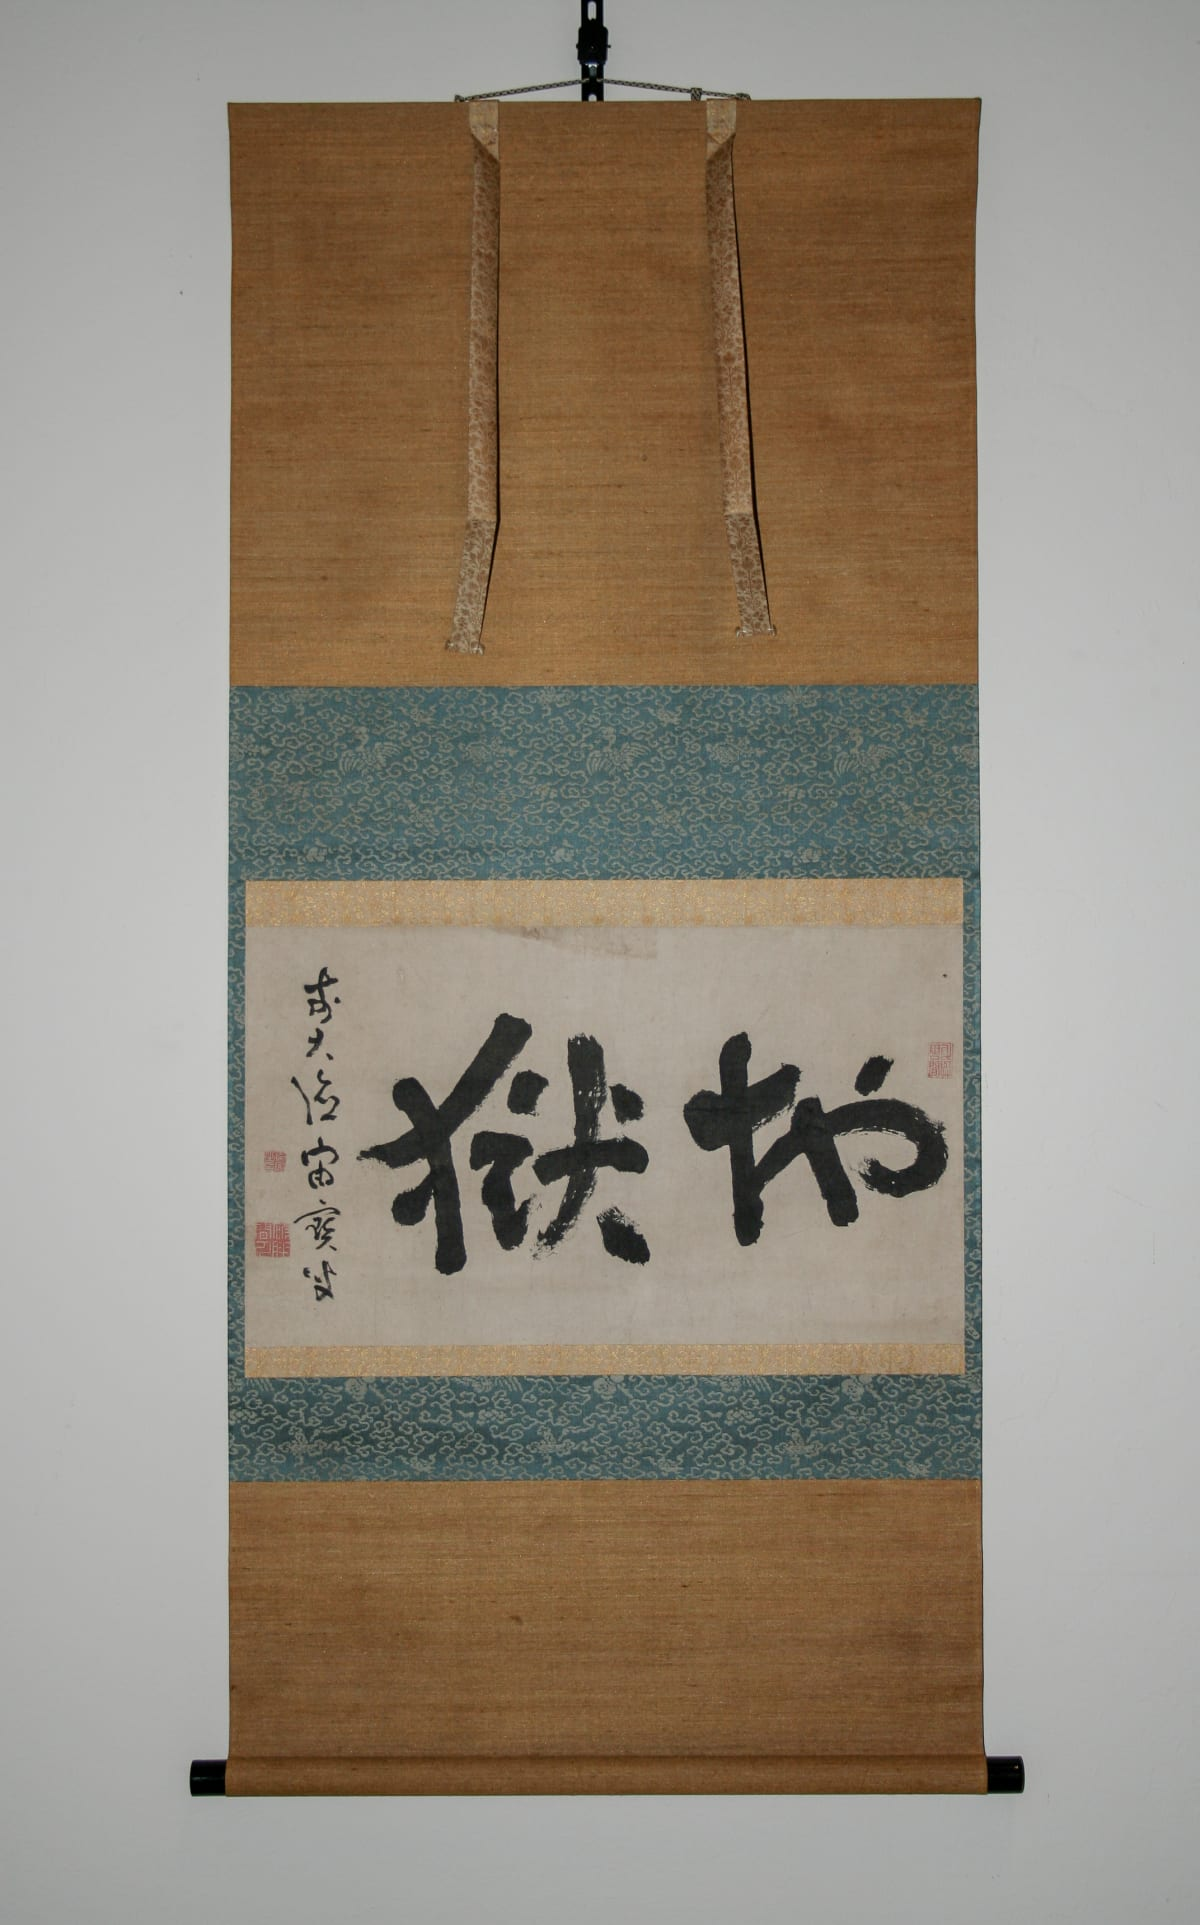 (Monk) Chuho-so-u (1758-1838), Jigoku, late 18th - early 19th century